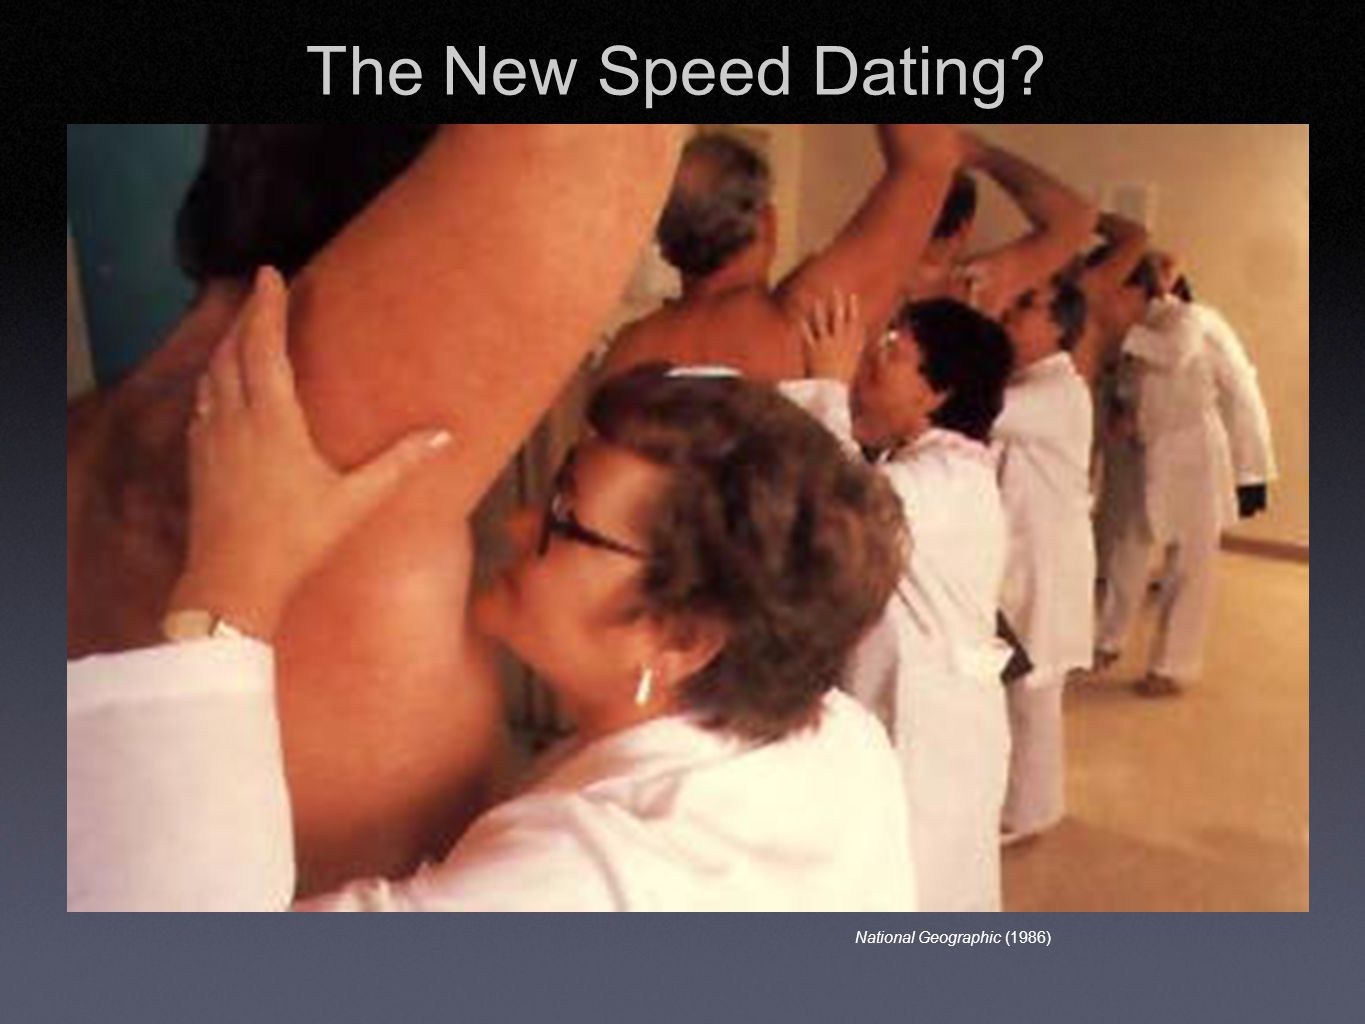 National Geographic (1986) The New Speed Dating